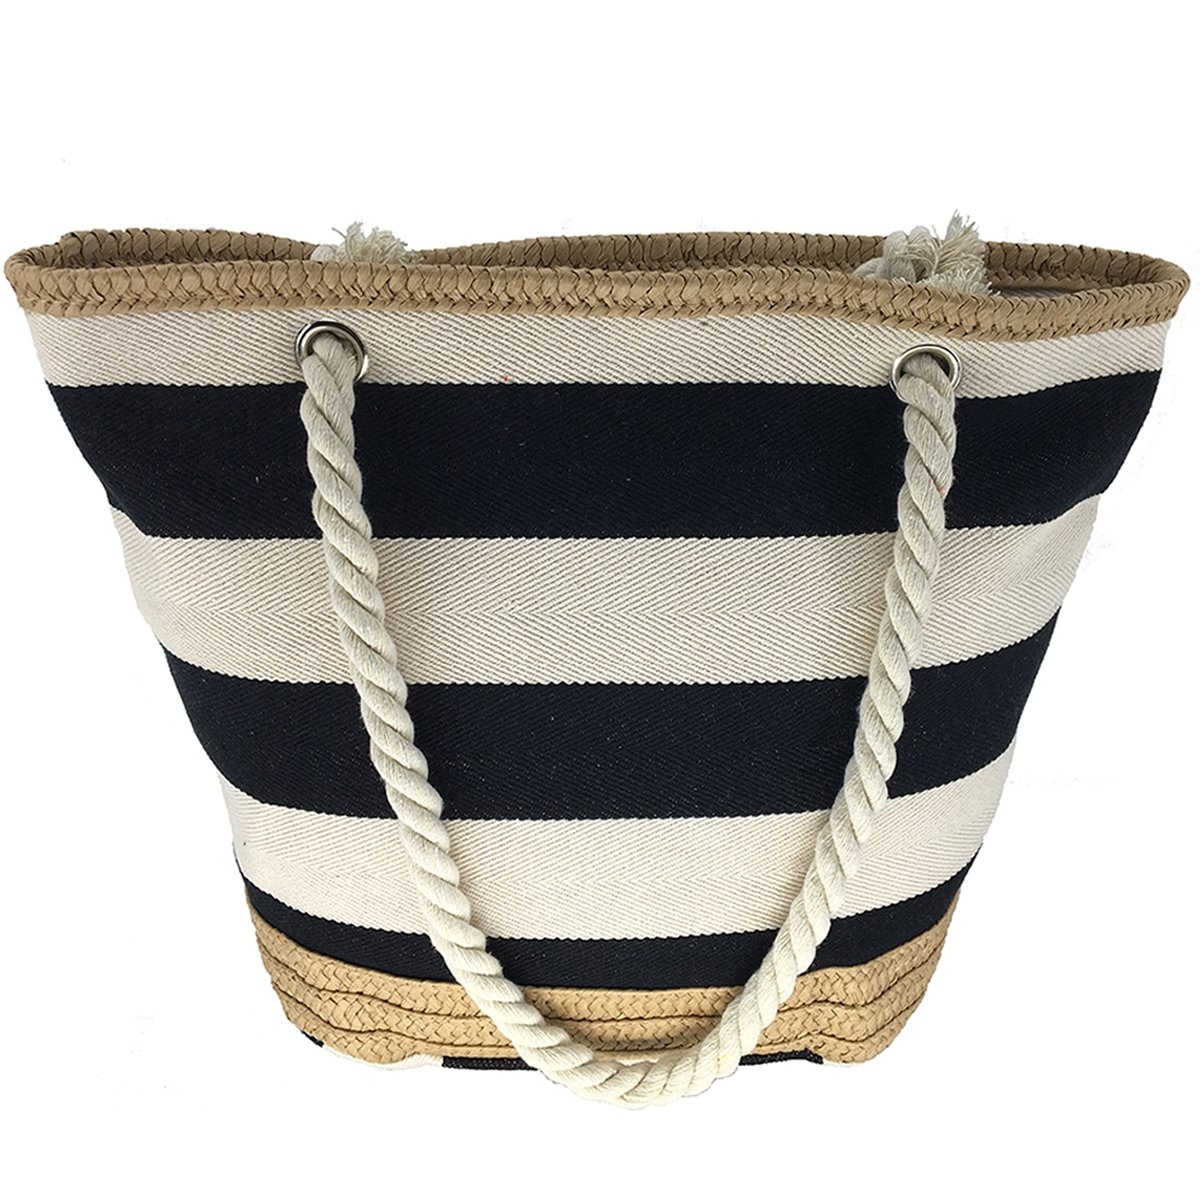 MeliMe X-Large Travel Shoulder Beach Tote Bag with Handmade Woven Straw Binding, Cotton Rope Handles, Waterproof Lining and a pocket inside. (Style 01)